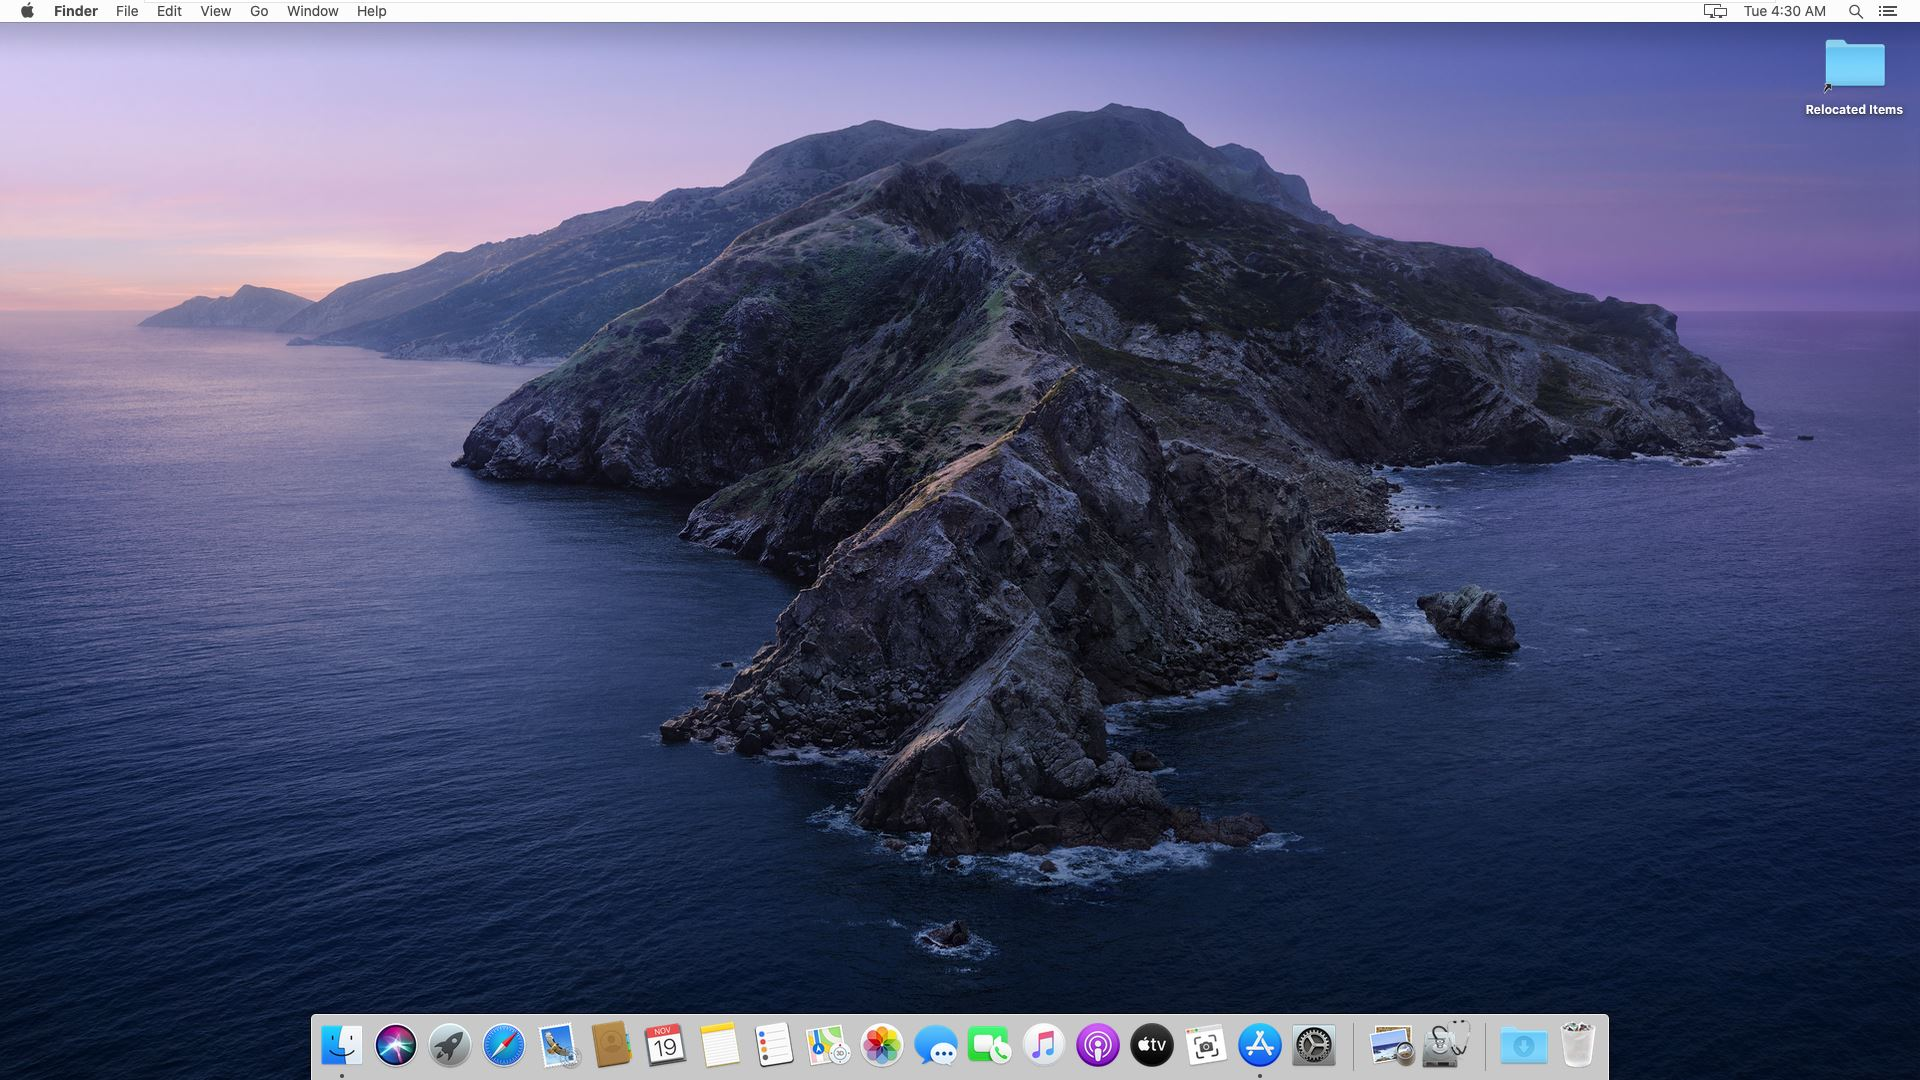 Upgraded to macOS Catalina